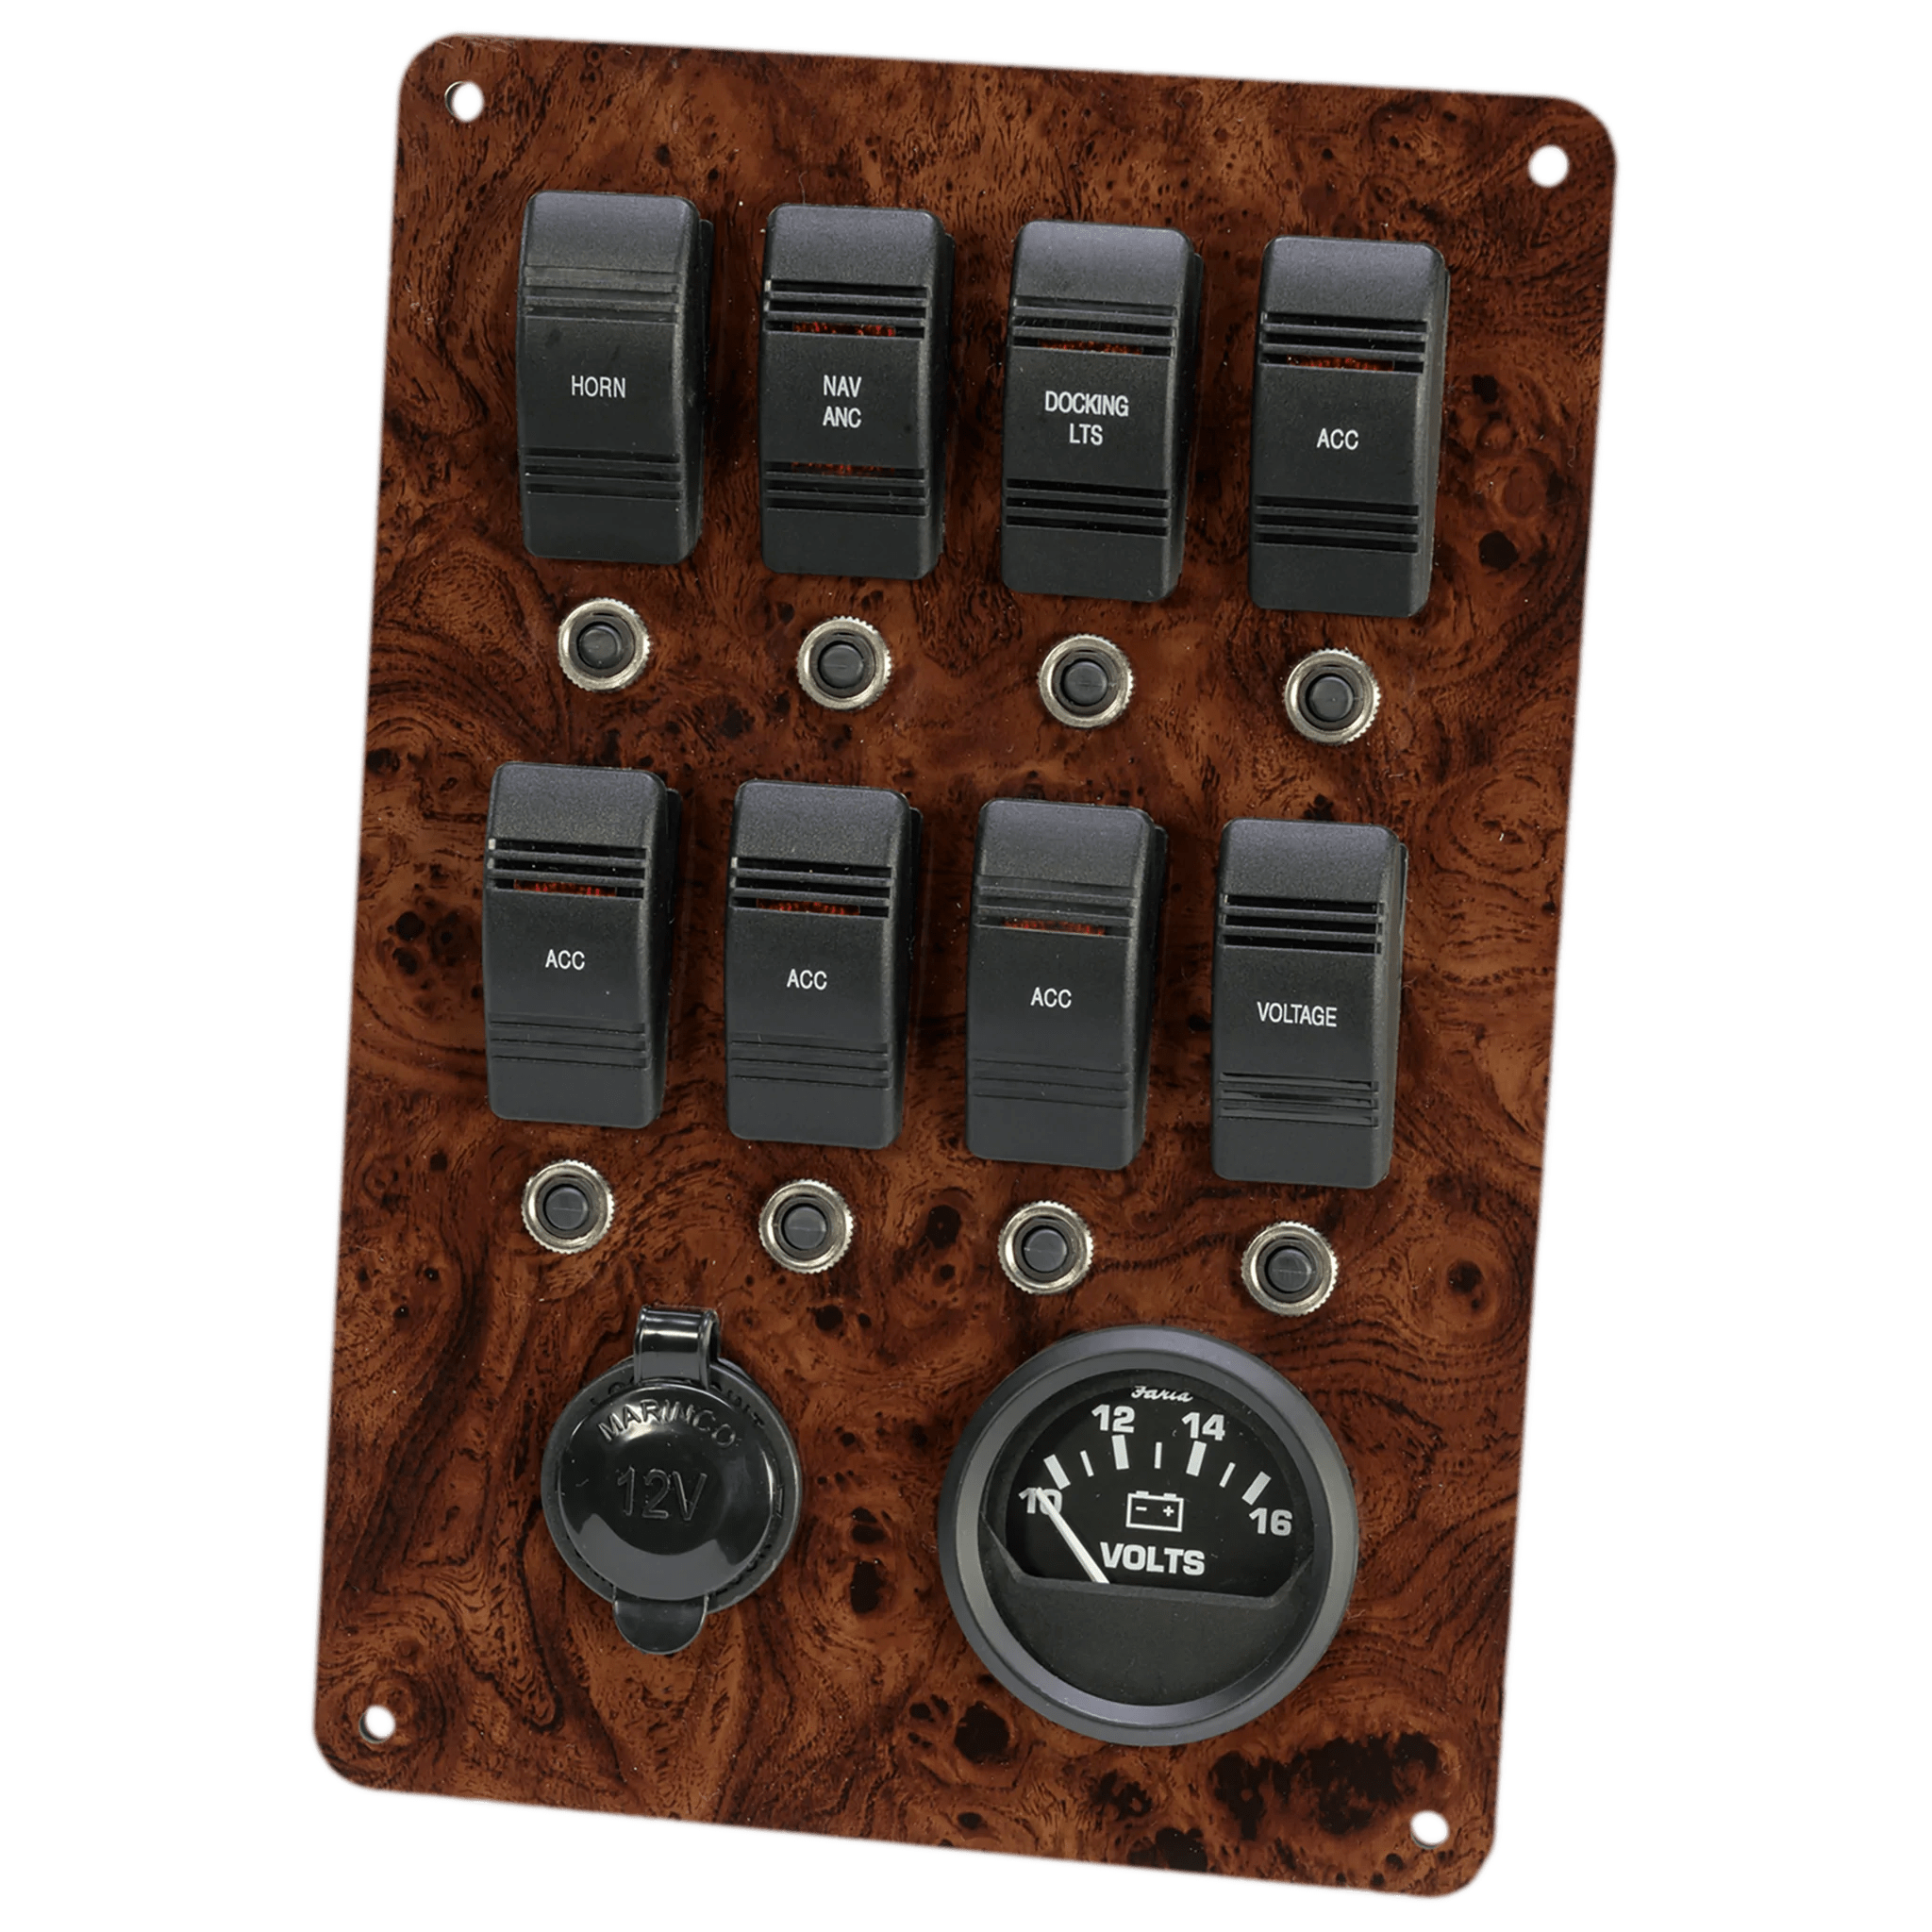 medium resolution of fully wired fused and loaded switch panel with 12 volt outlet and battery meter